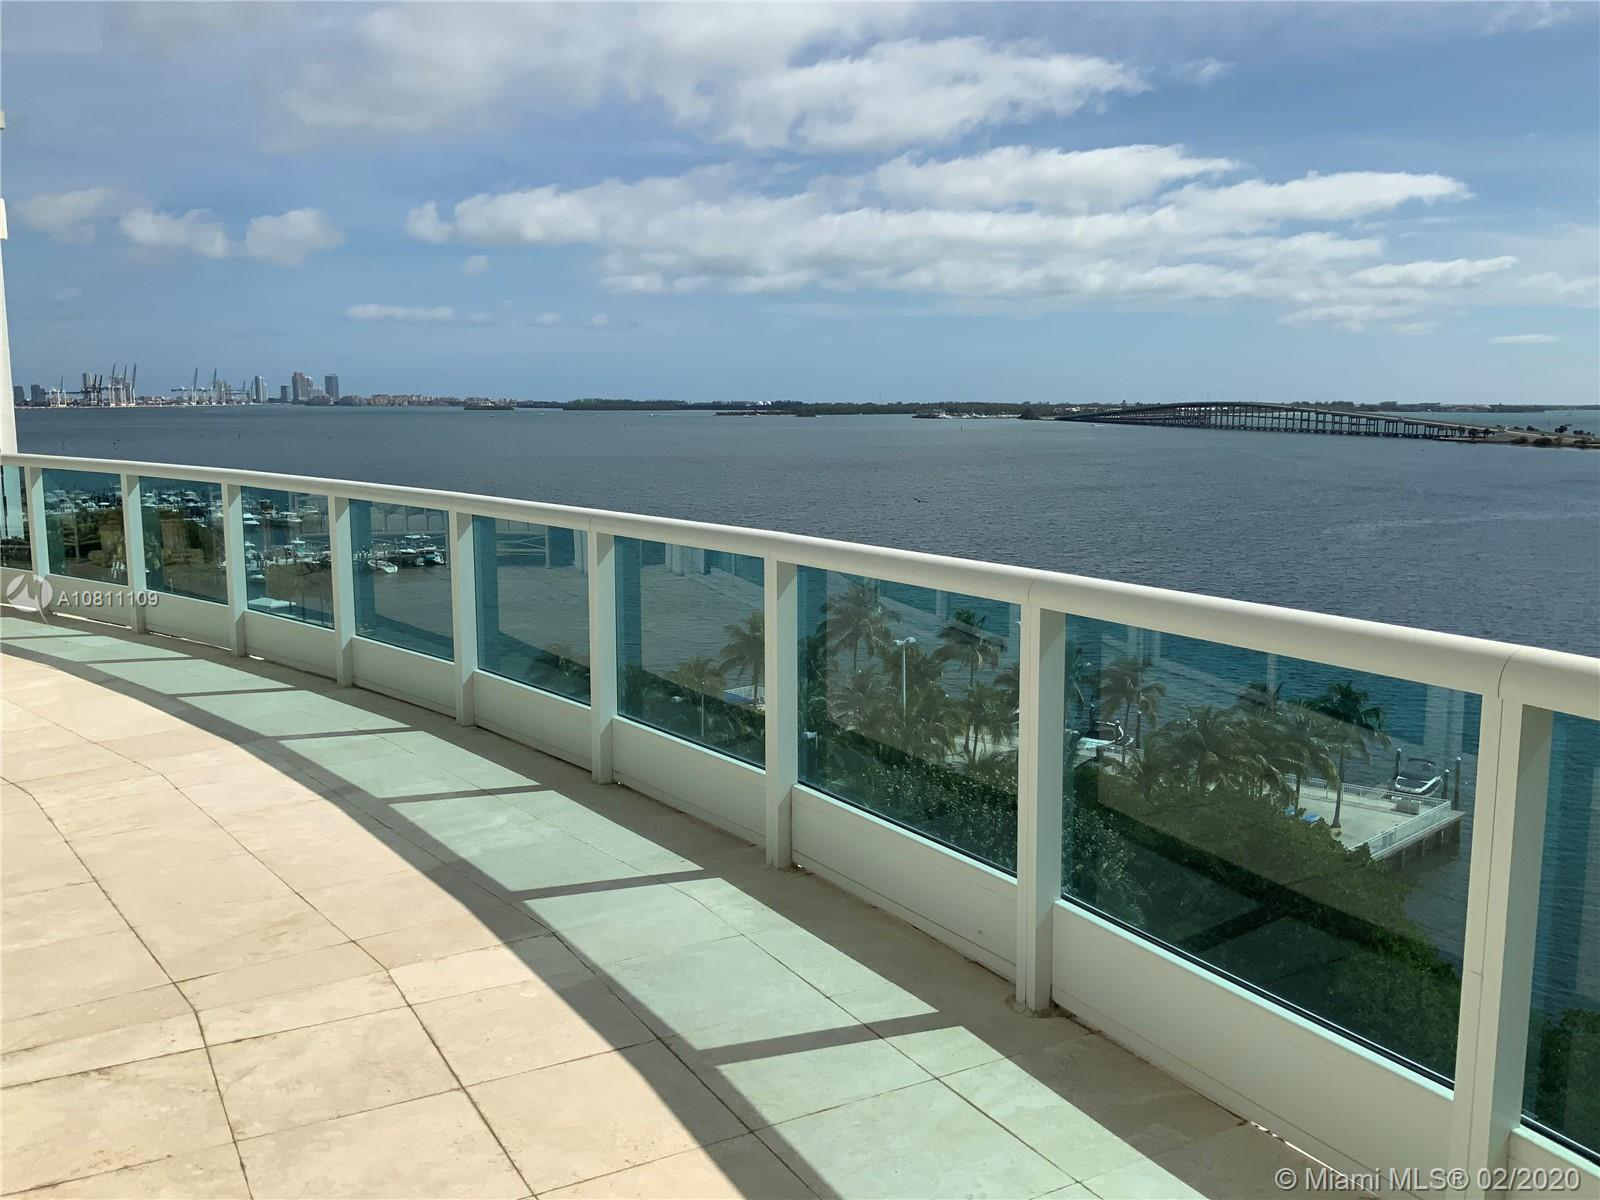 Enjoy direct Biscayne Bay, Miami Beach, Key Biscayne and Atlantic views from all rooms in this great duplex unit at Brickell Avenue's Bristol Tower. This 2 bedroom, 3.5 bathroom and 2 den unit features double-height ceilings in the living room, 3 terraces, gourmet eat-in kitchen, wet bar, his-and-hers bathrooms on the master suite, marble floors in the social areas and parquet floors in the private quarters and 2 assigned parking spots. Unit is very easily convertible into a 3 bedroom.